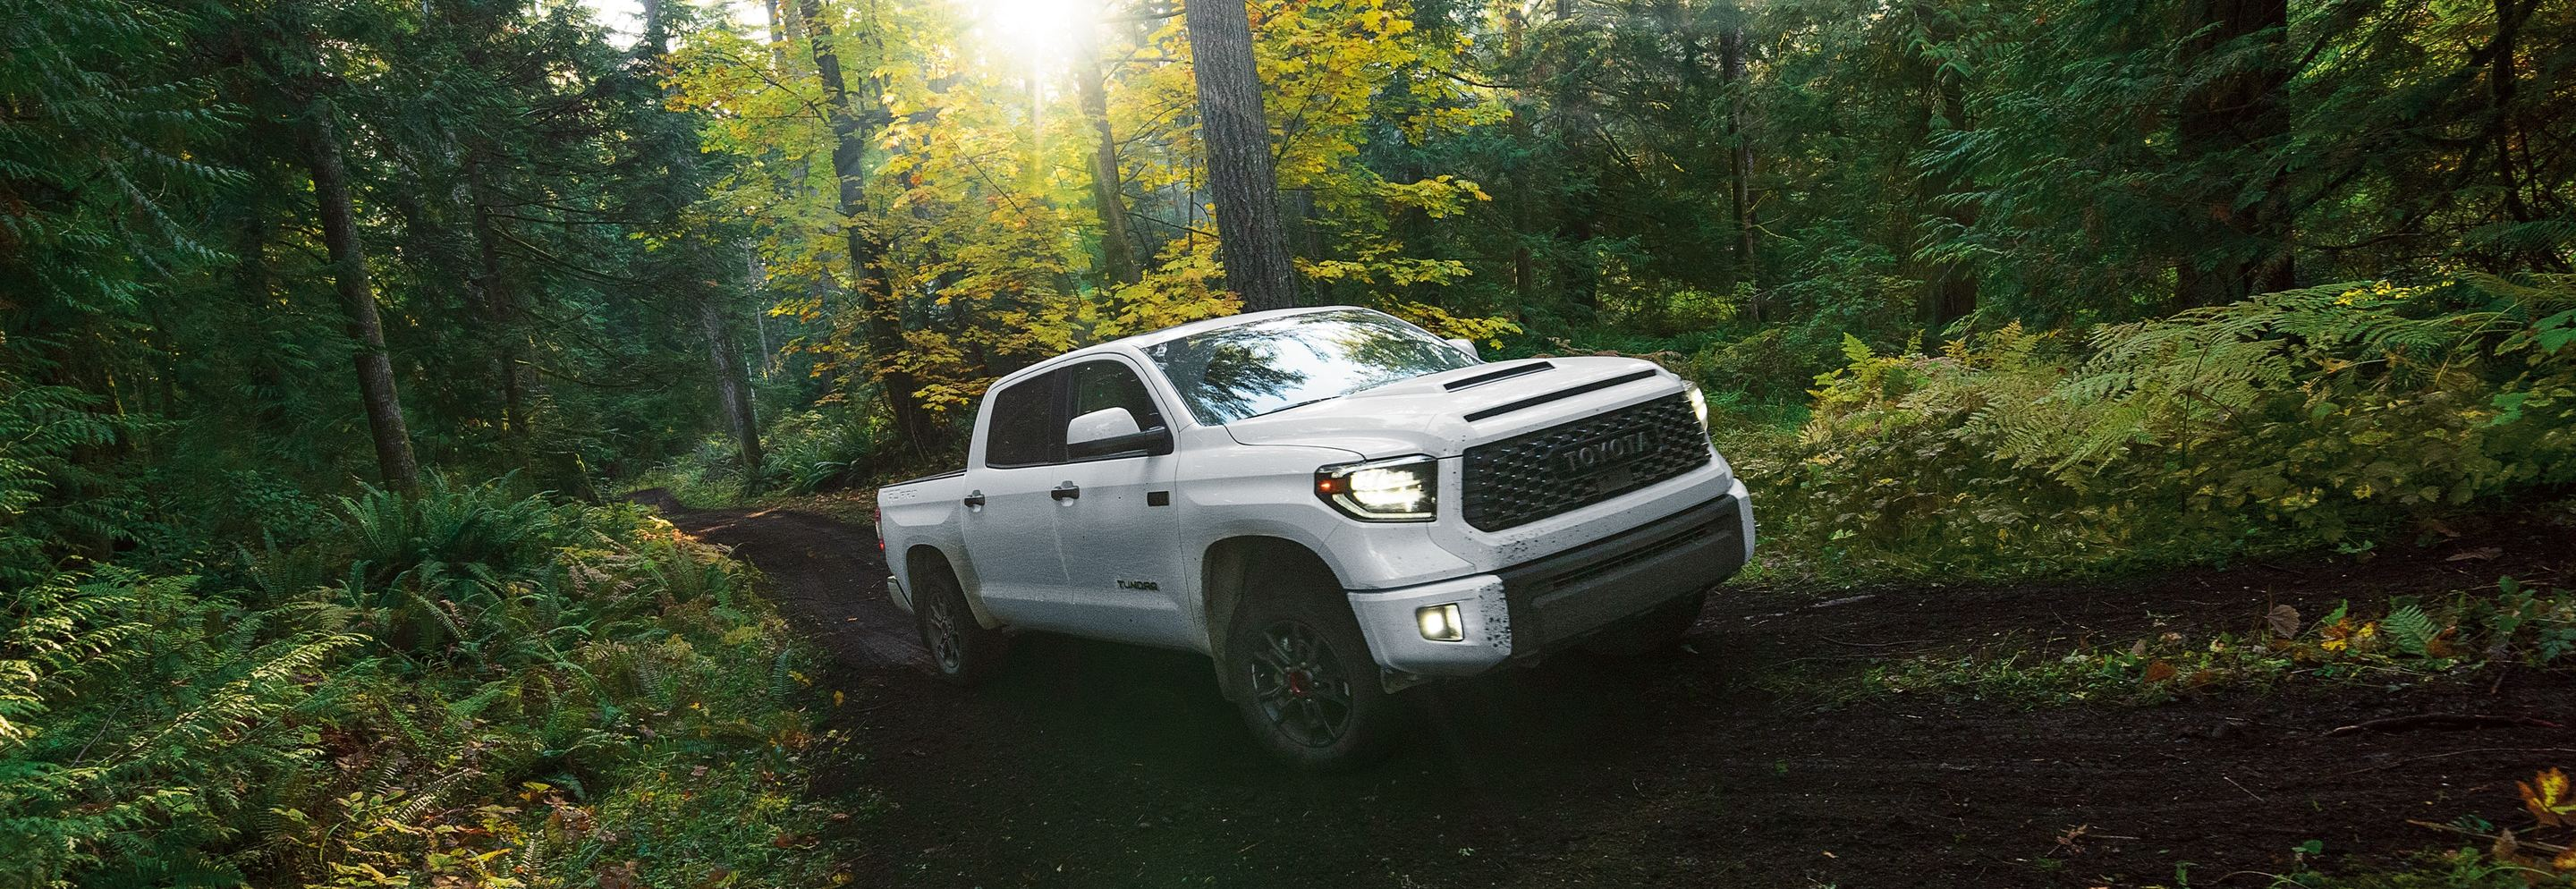 2020 Toyota Tundra for Sale near Crossville, TN